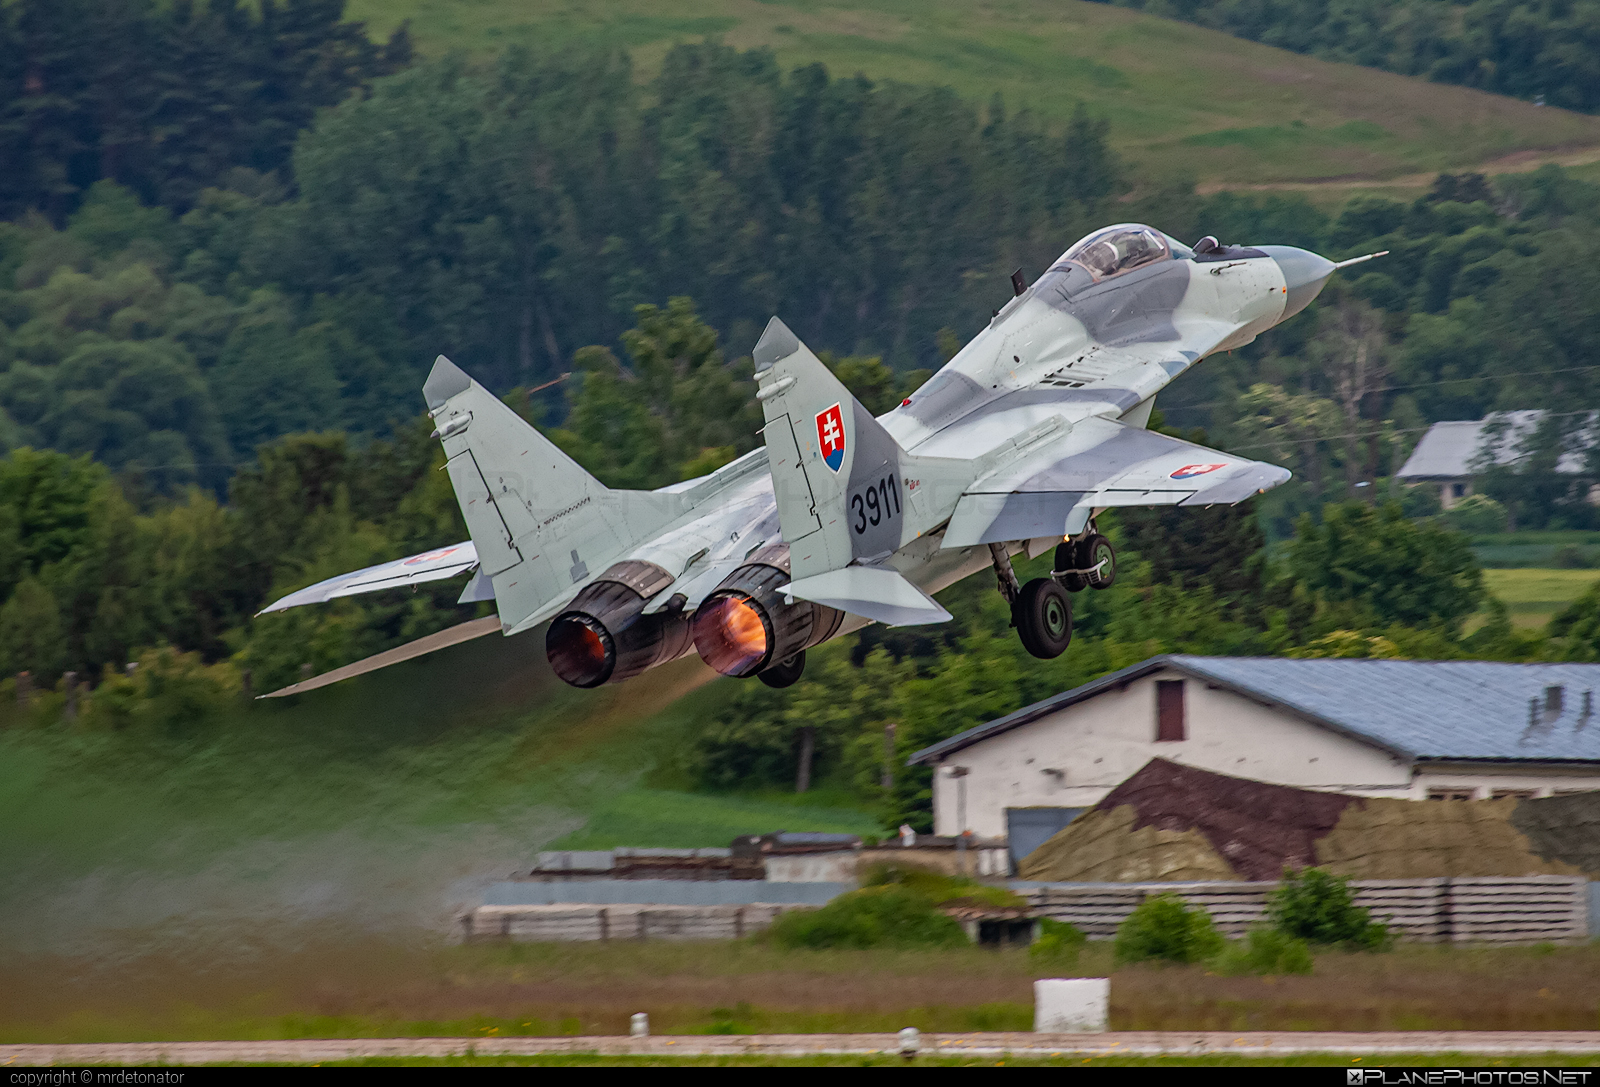 Mikoyan-Gurevich MiG-29AS - 3911 operated by Vzdušné sily OS SR (Slovak Air Force) #mig #mig29 #mig29as #mikoyangurevich #siaf2006 #slovakairforce #vzdusnesilyossr